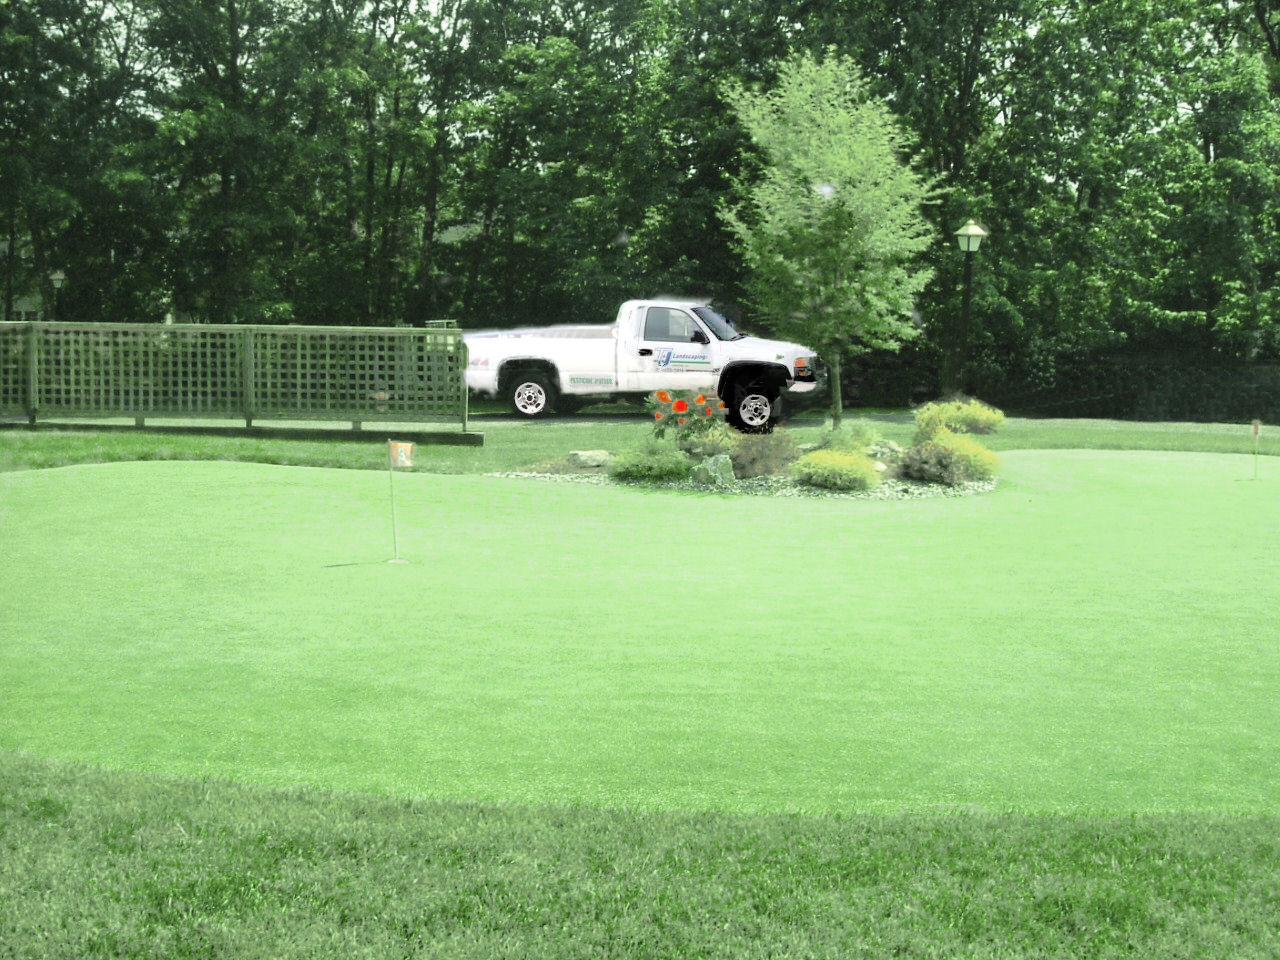 lawn service display on a putting green